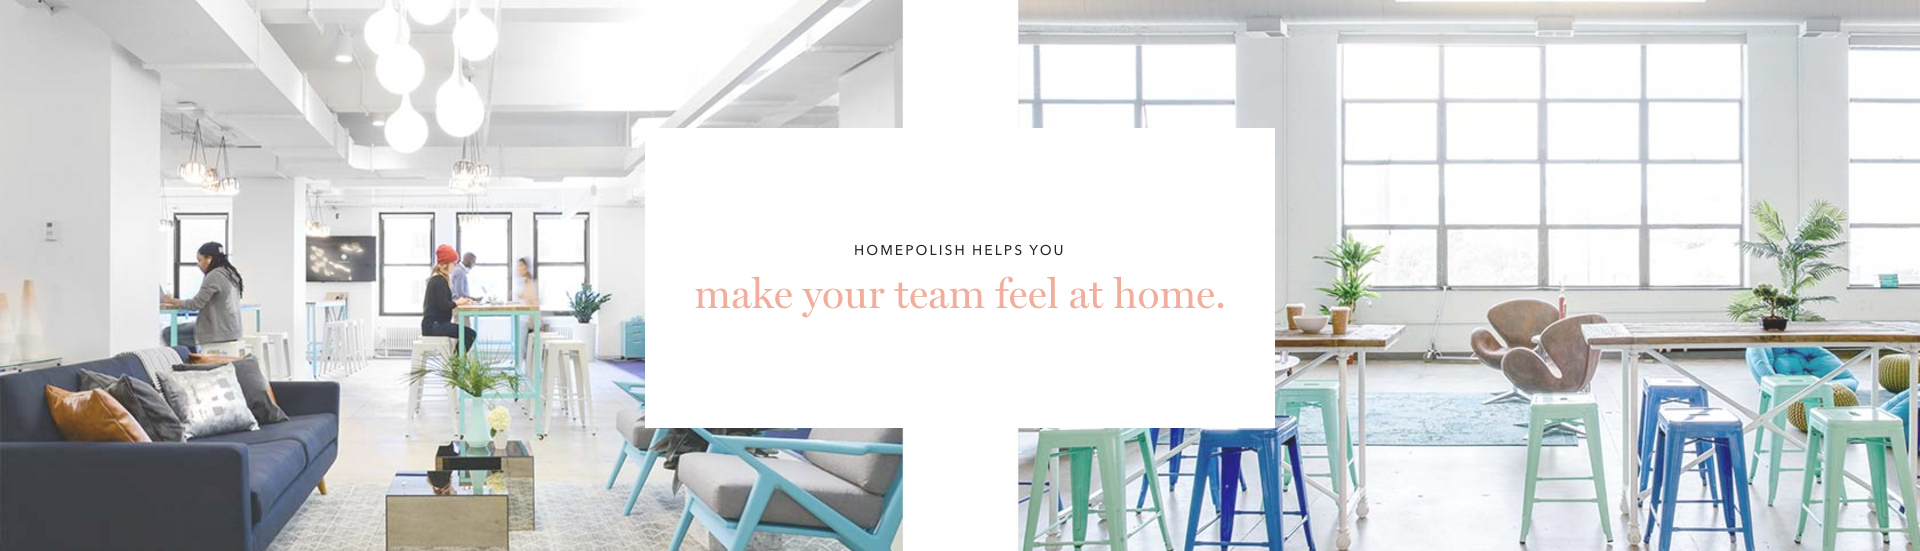 homepolish wide